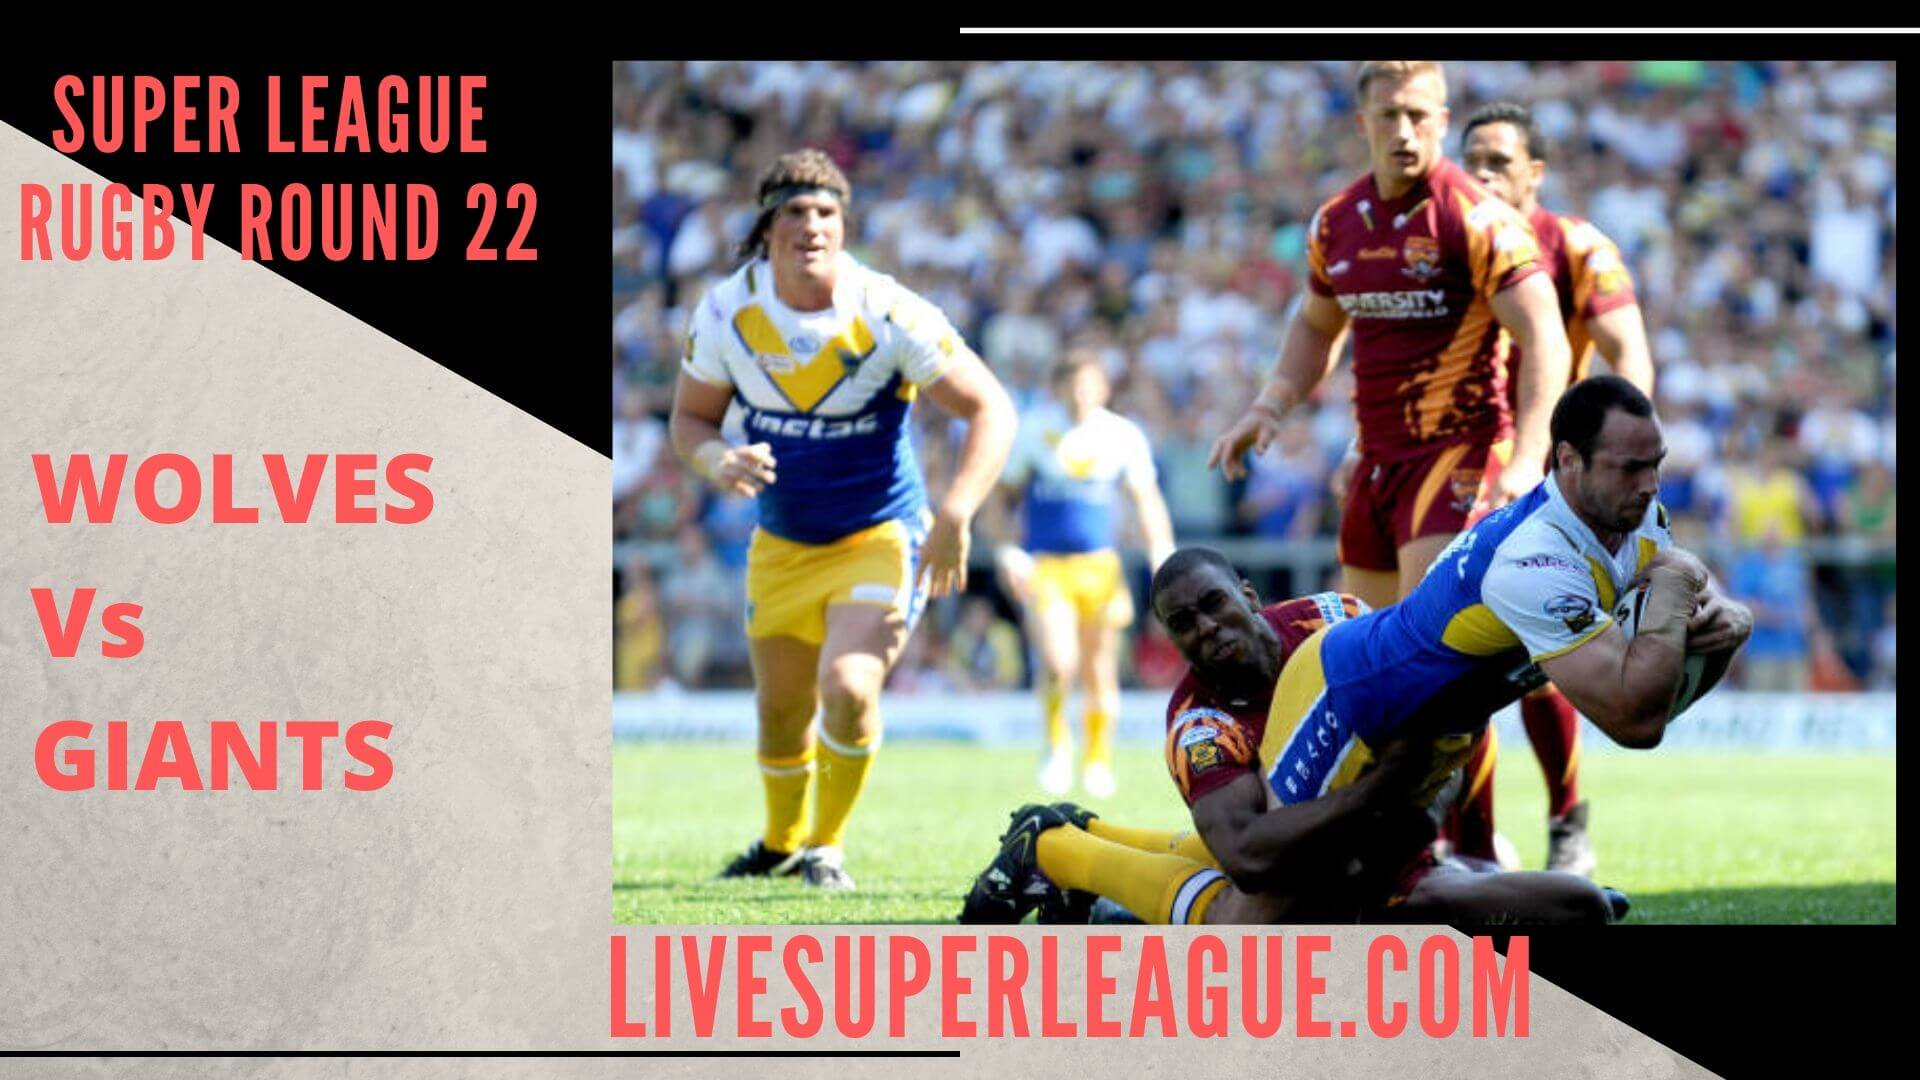 Warrington Wolves Vs Huddersfield Giants Live Stream | Round 22: Full Match Replay